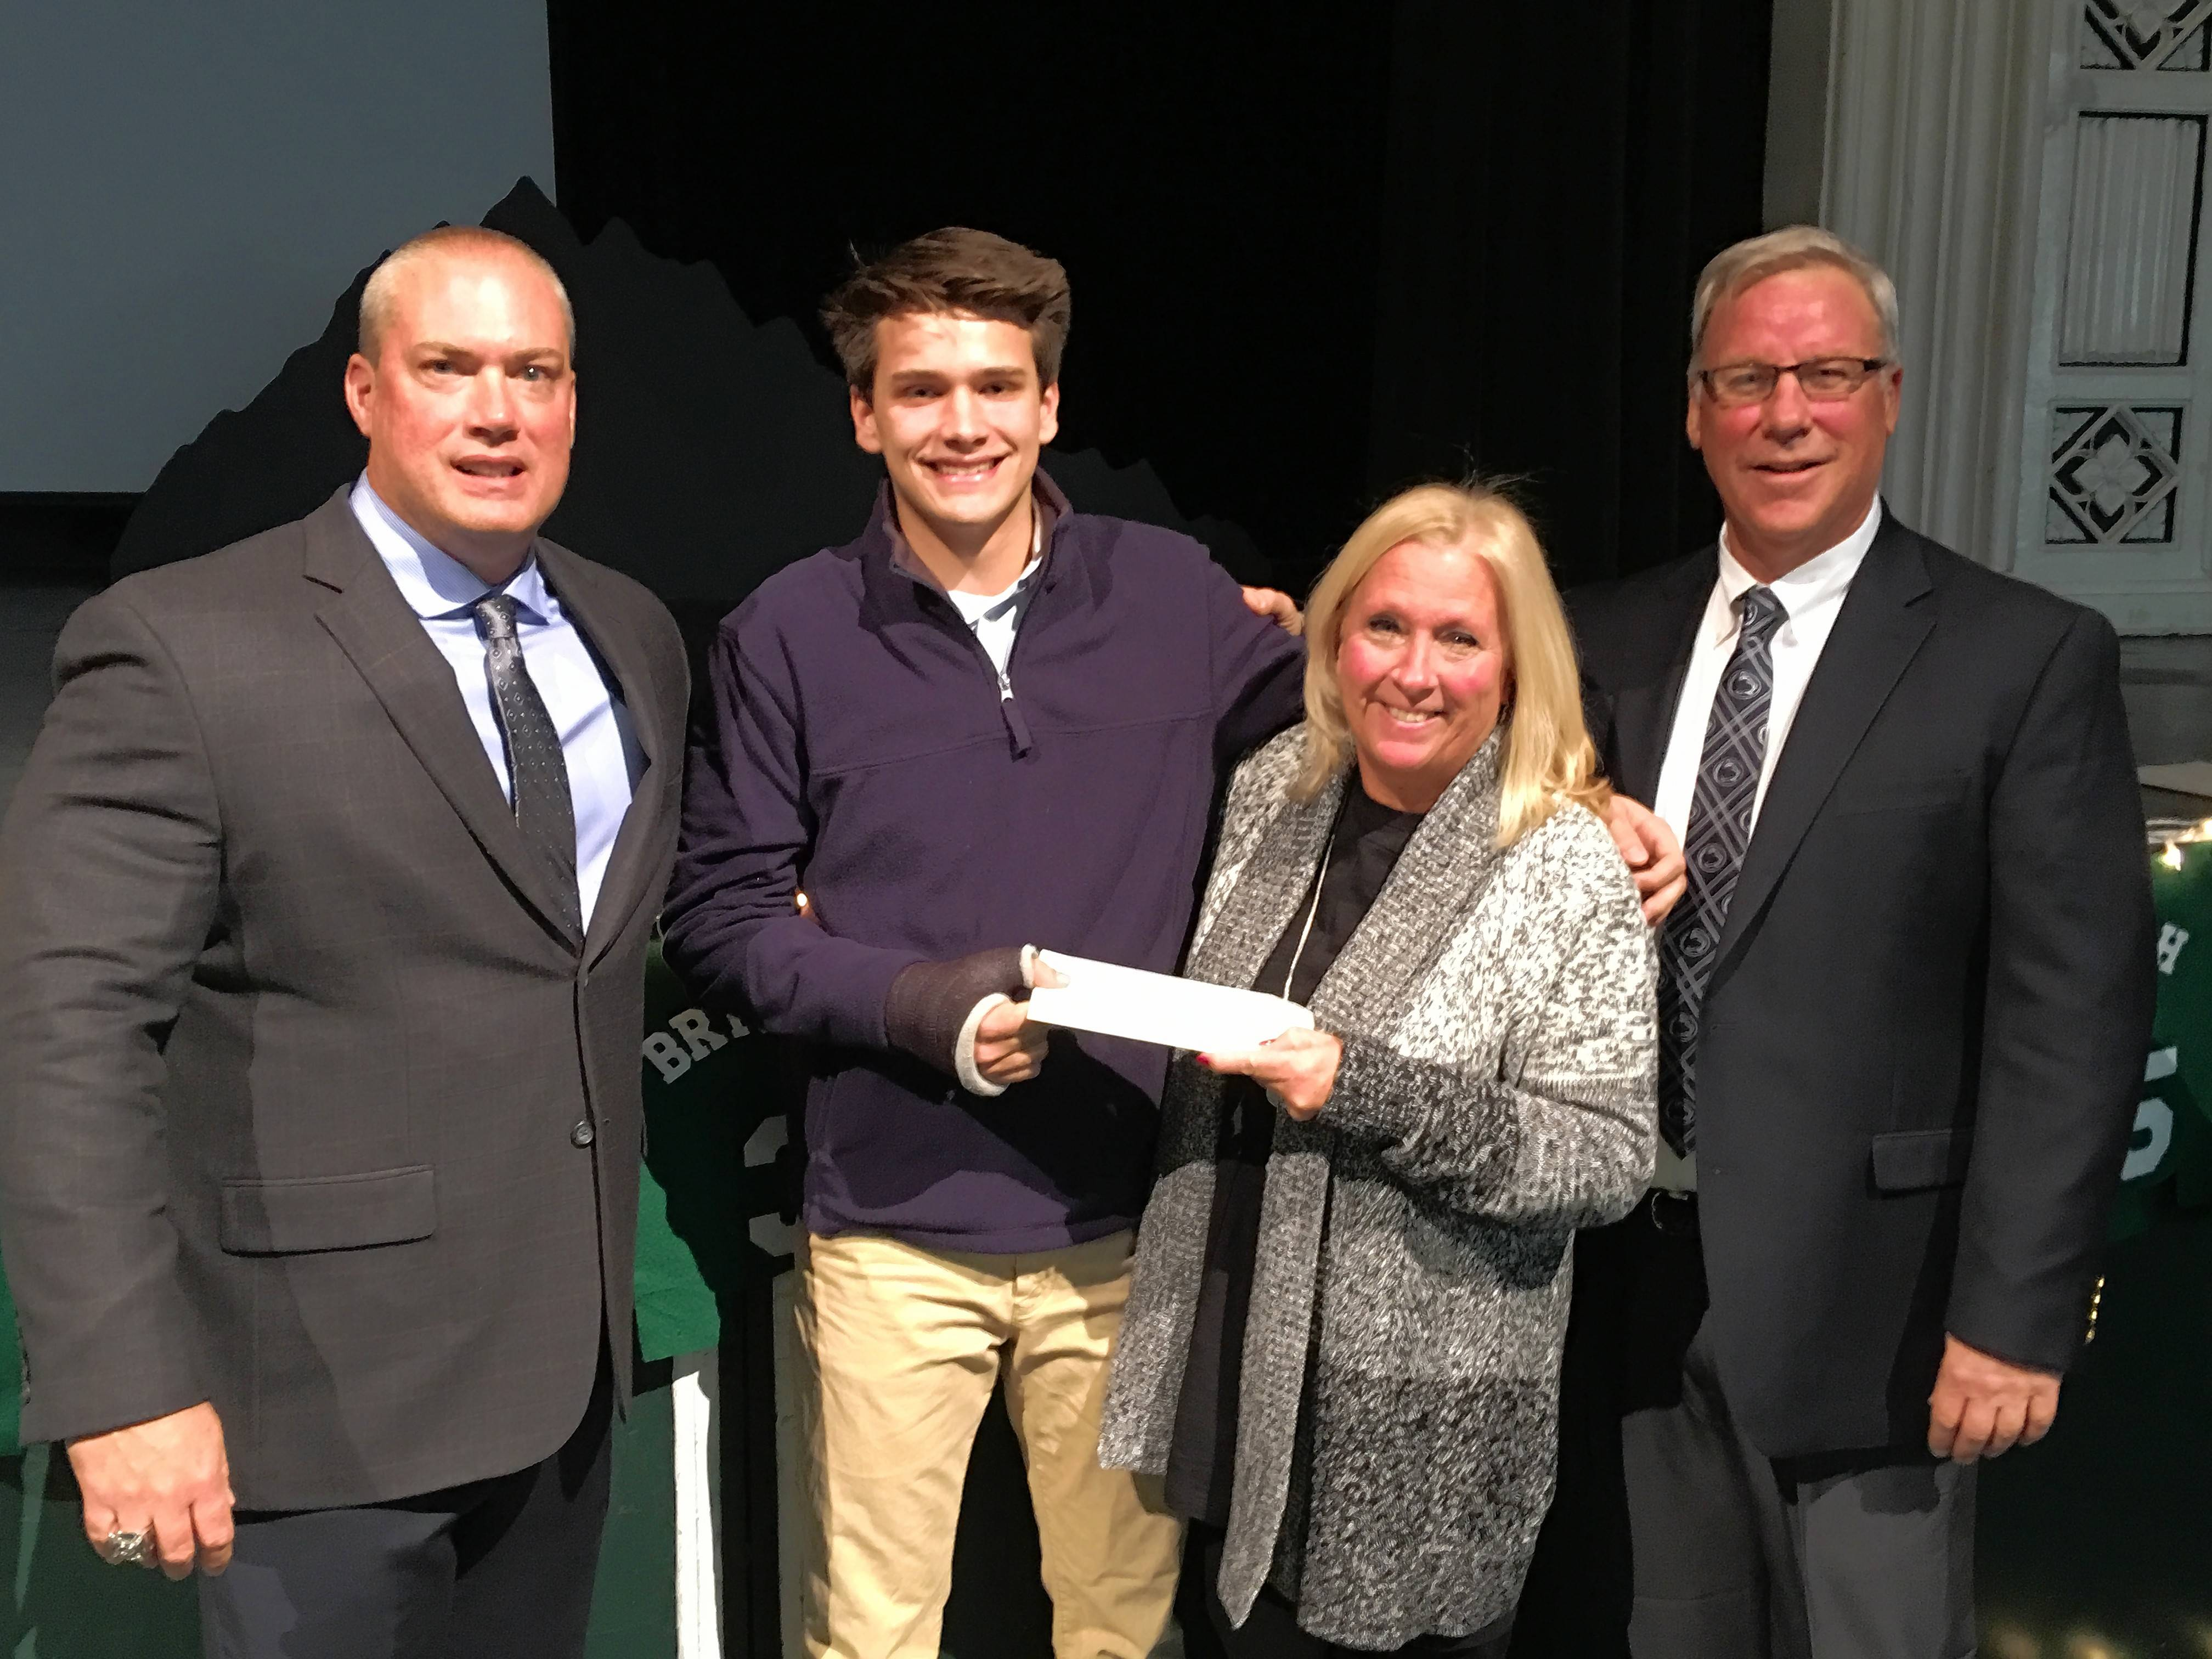 Yanni Pappas is presented the Andrew Garwood STRONG Foundation scholarship at Glenbard West's football banquet last weekend. From left are Glenbard West football coach Chad Hetlet, Yanni Pappas, Terri and Steve Garwood.